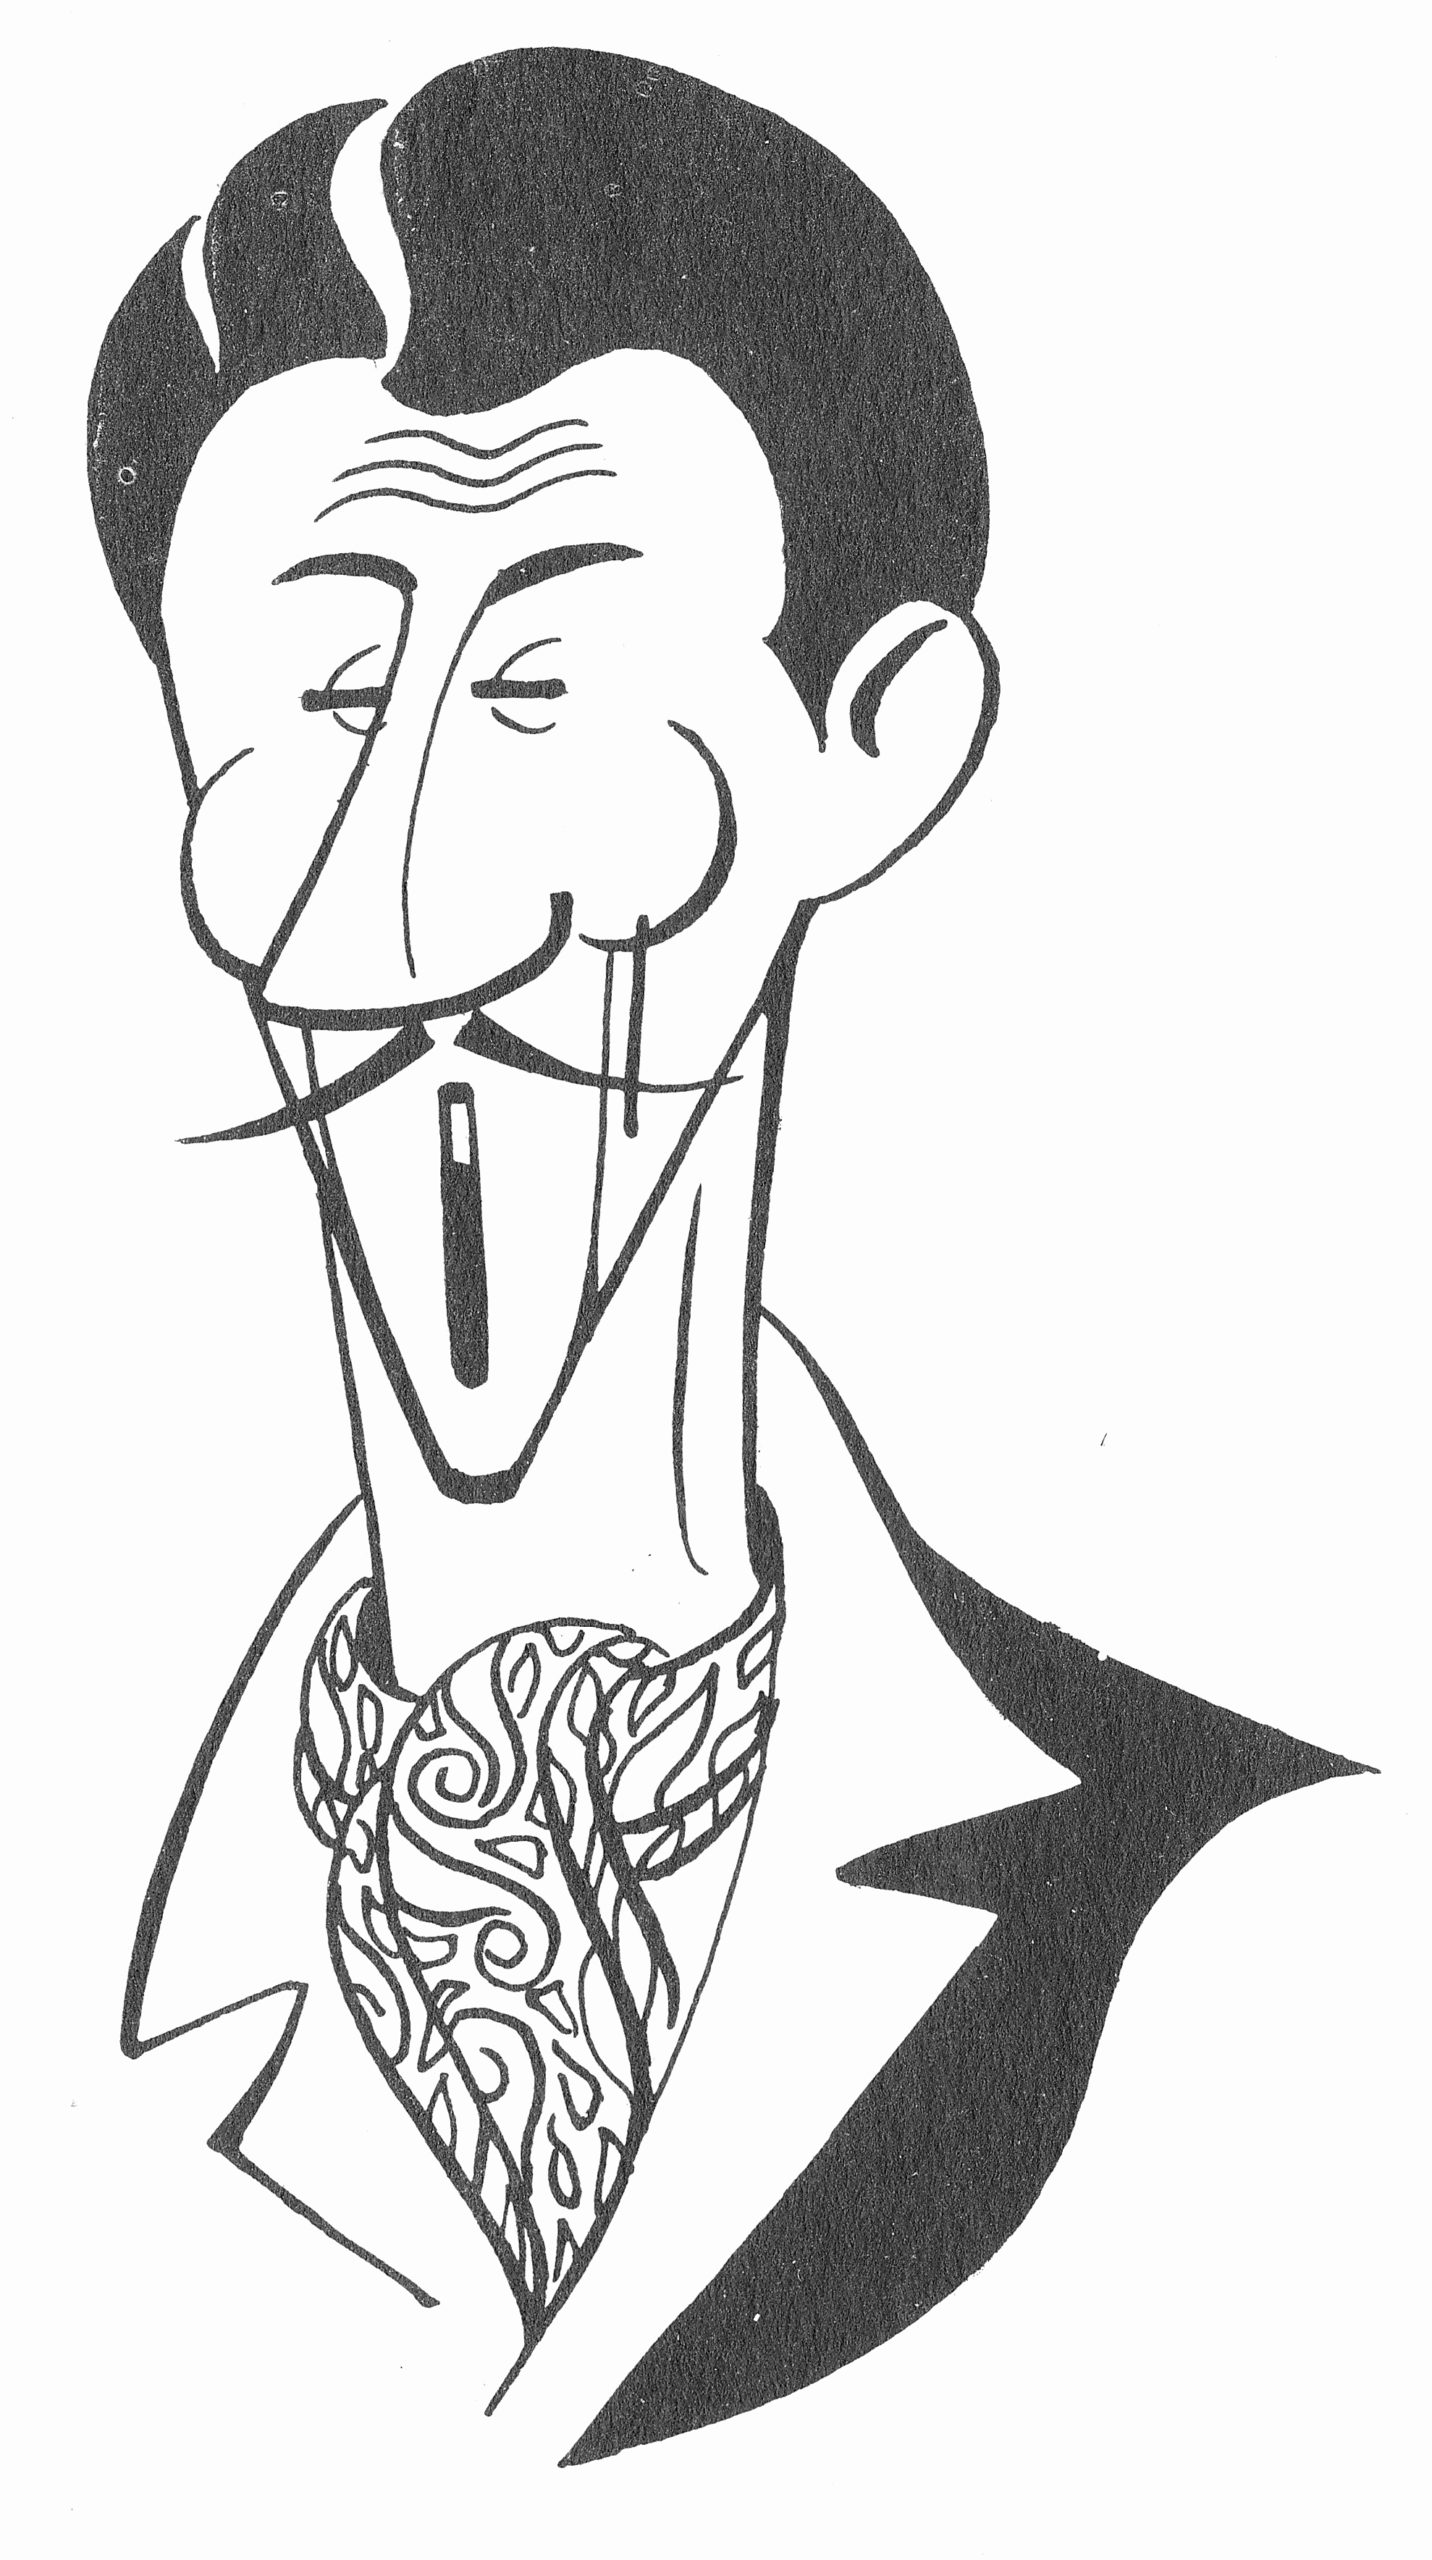 C:\Users\Robert\Documents\CARTOONING ILLUSTRATION ANIMATION\IMAGE BY CARTOONIST\B\BERTHIAUME Roland, un monde fou, 1961.jpg